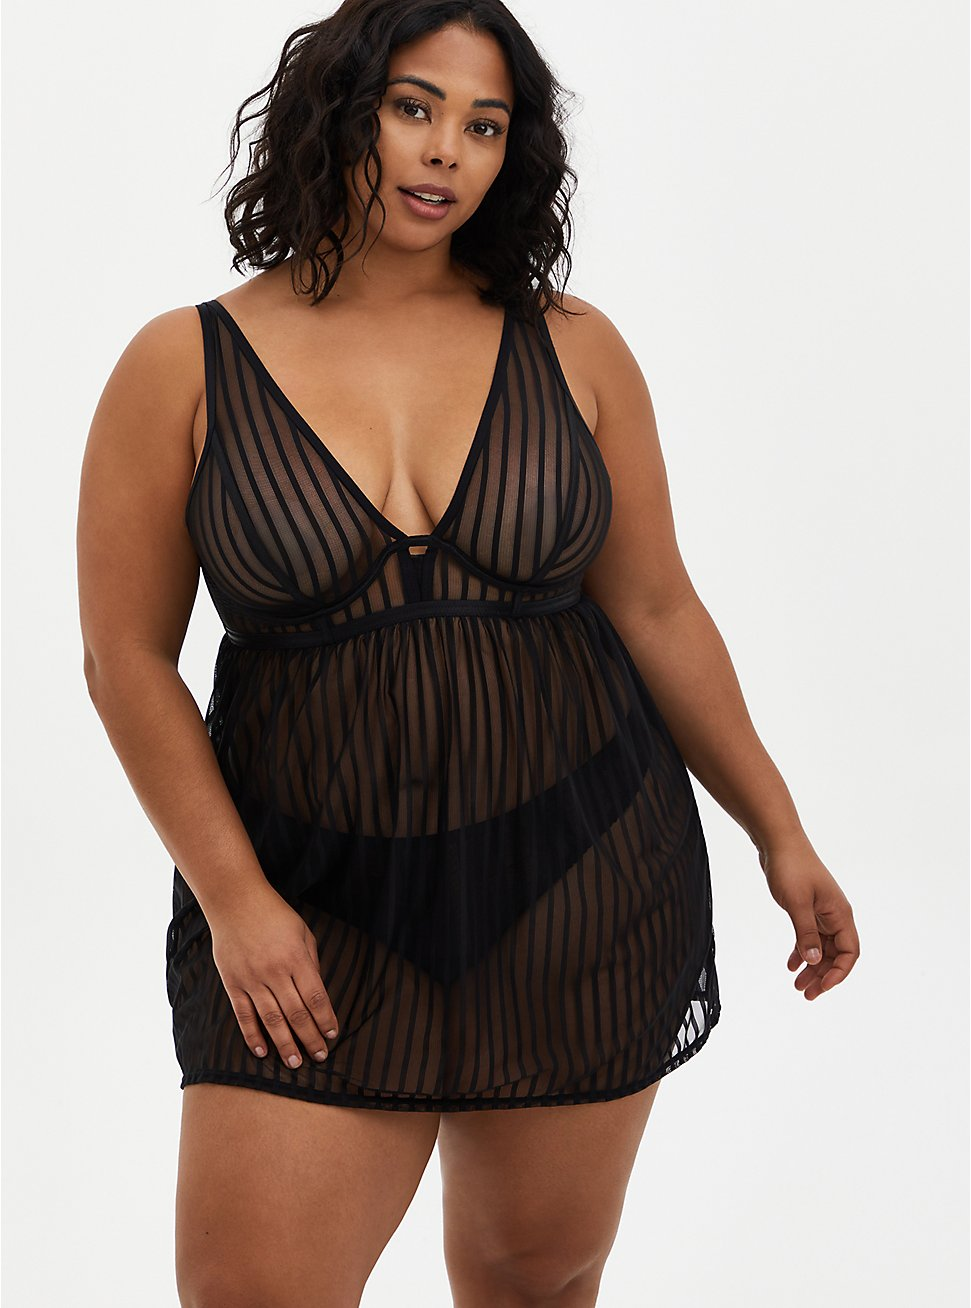 Black Striped Mesh Underwire Babydoll, RICH BLACK, hi-res